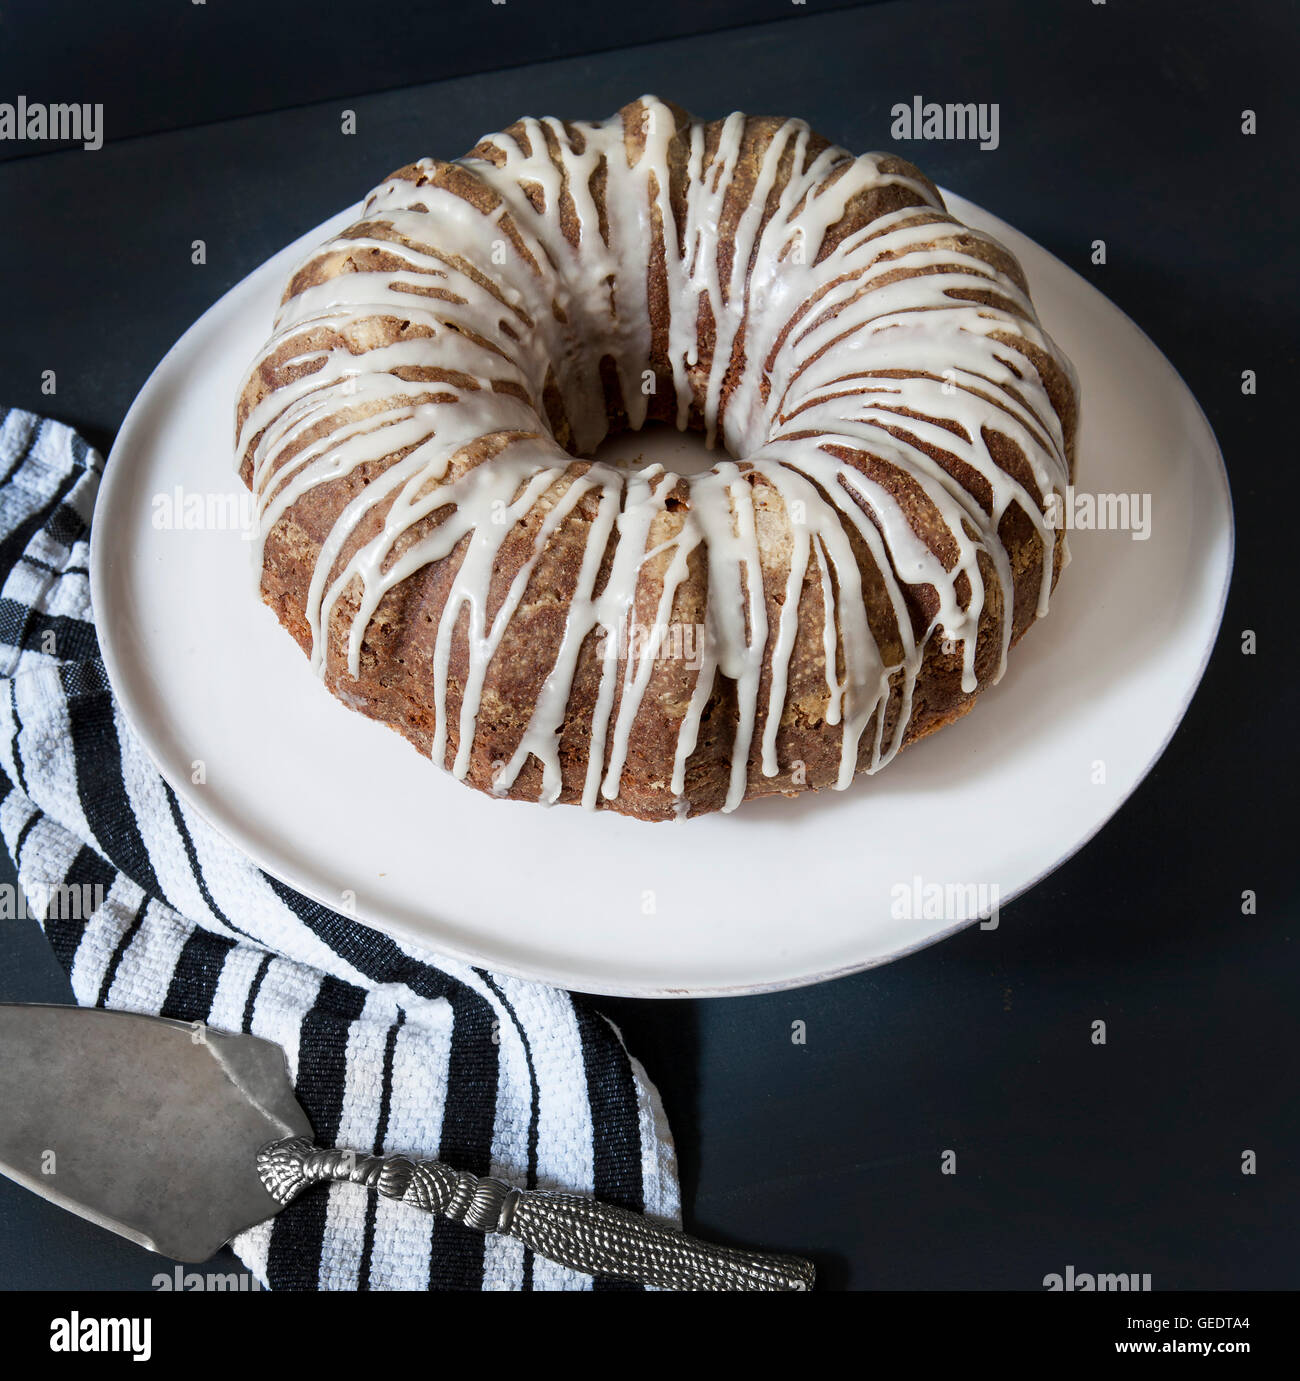 Sour Cream Coffee Cake with Maple Syrup Glaze, High Angle View - Stock Image